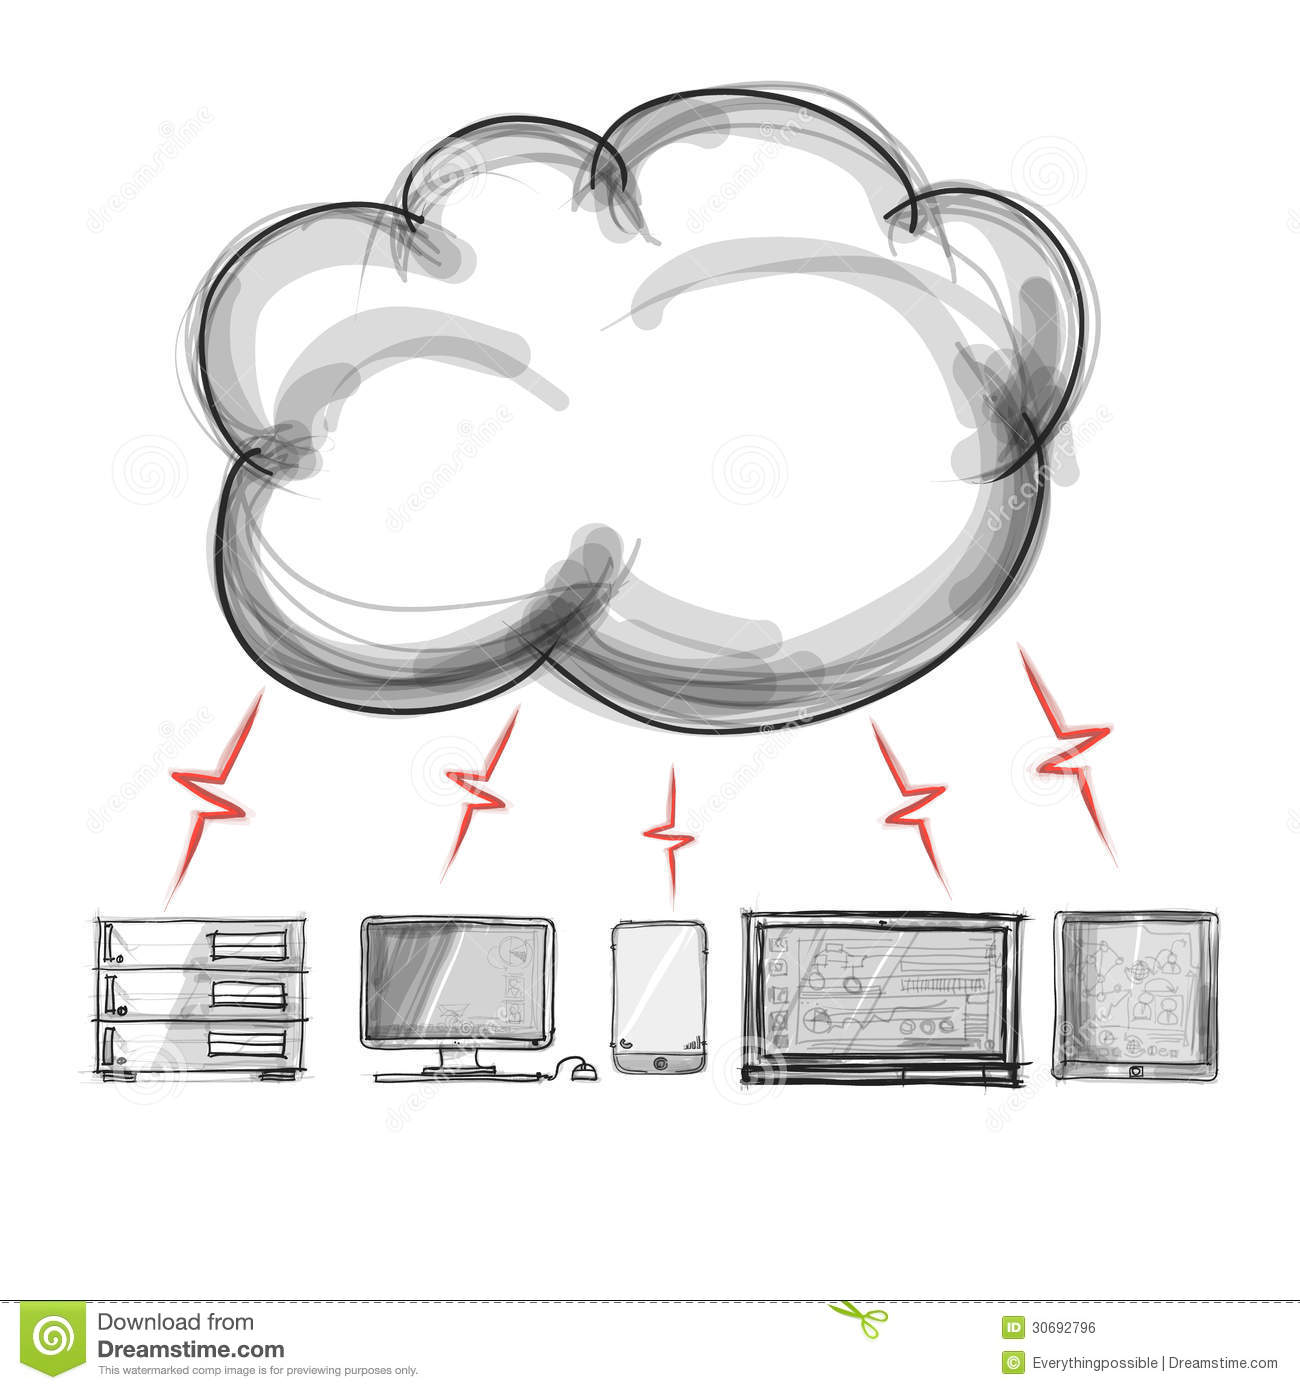 A Cloud Computing Diagram Royalty Free Stock Image